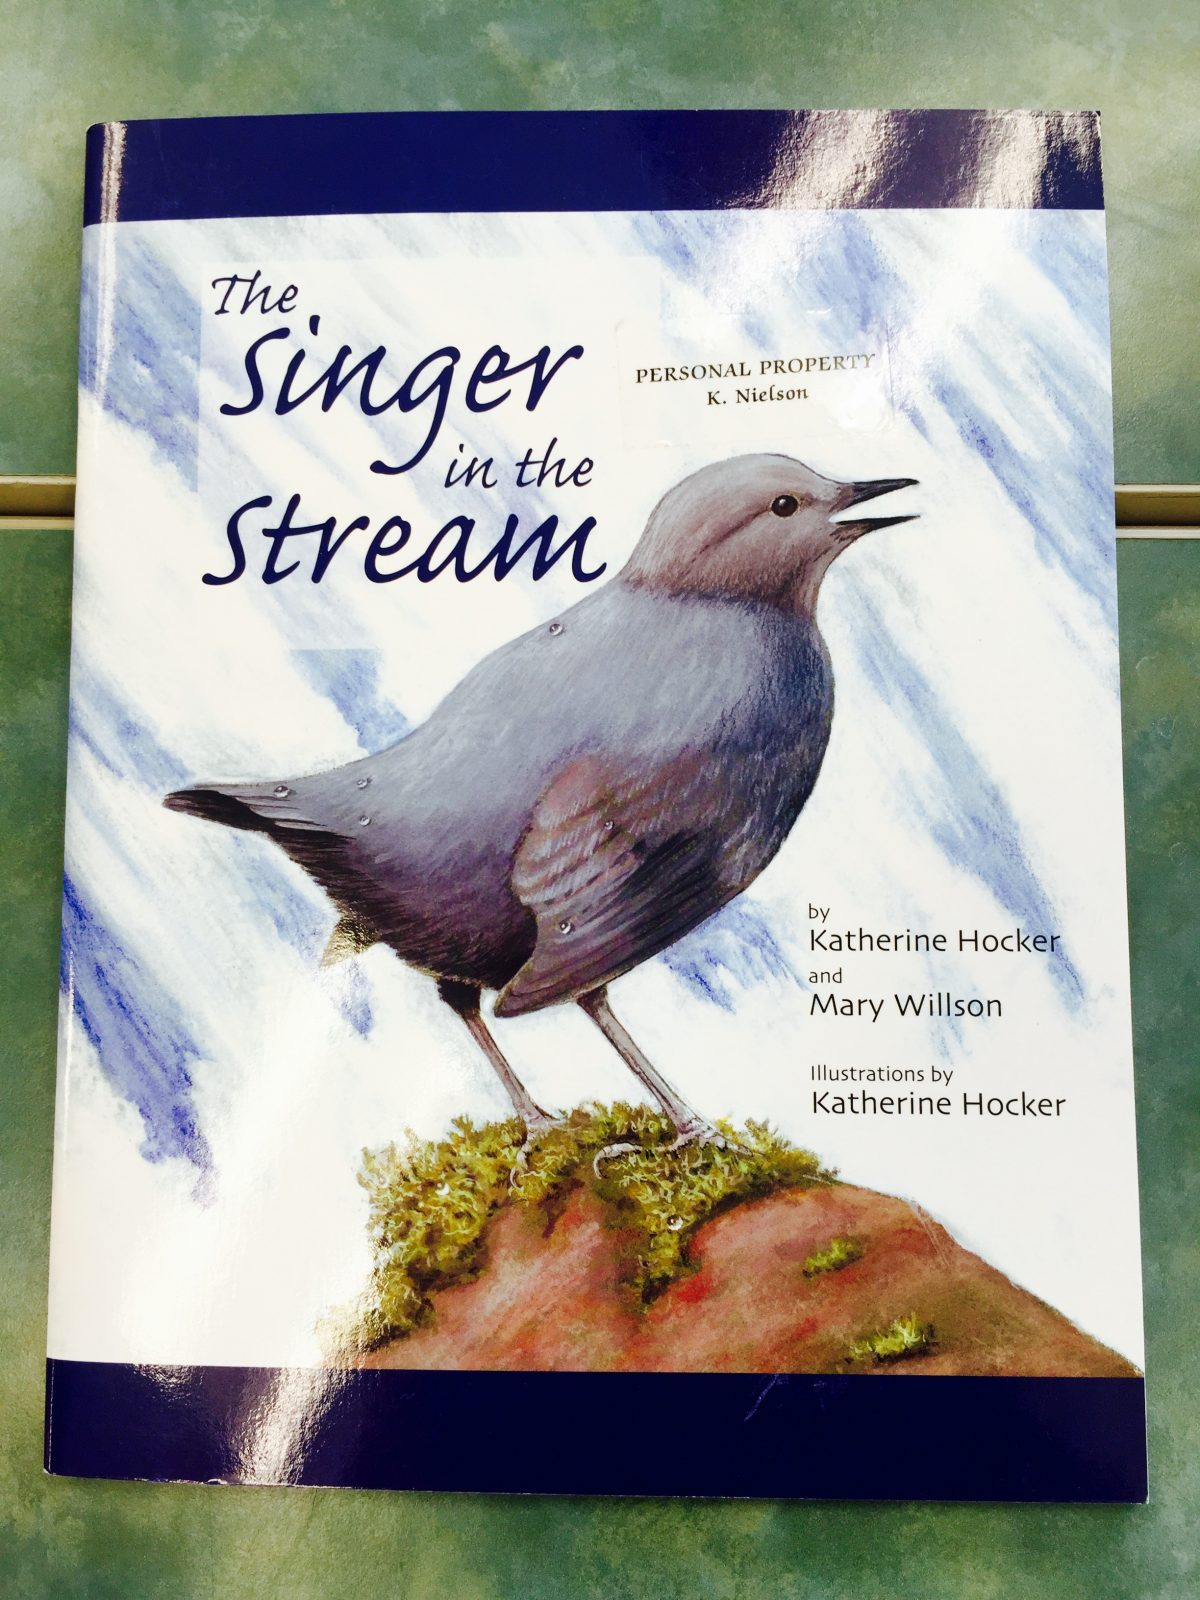 The Singer in the Stream